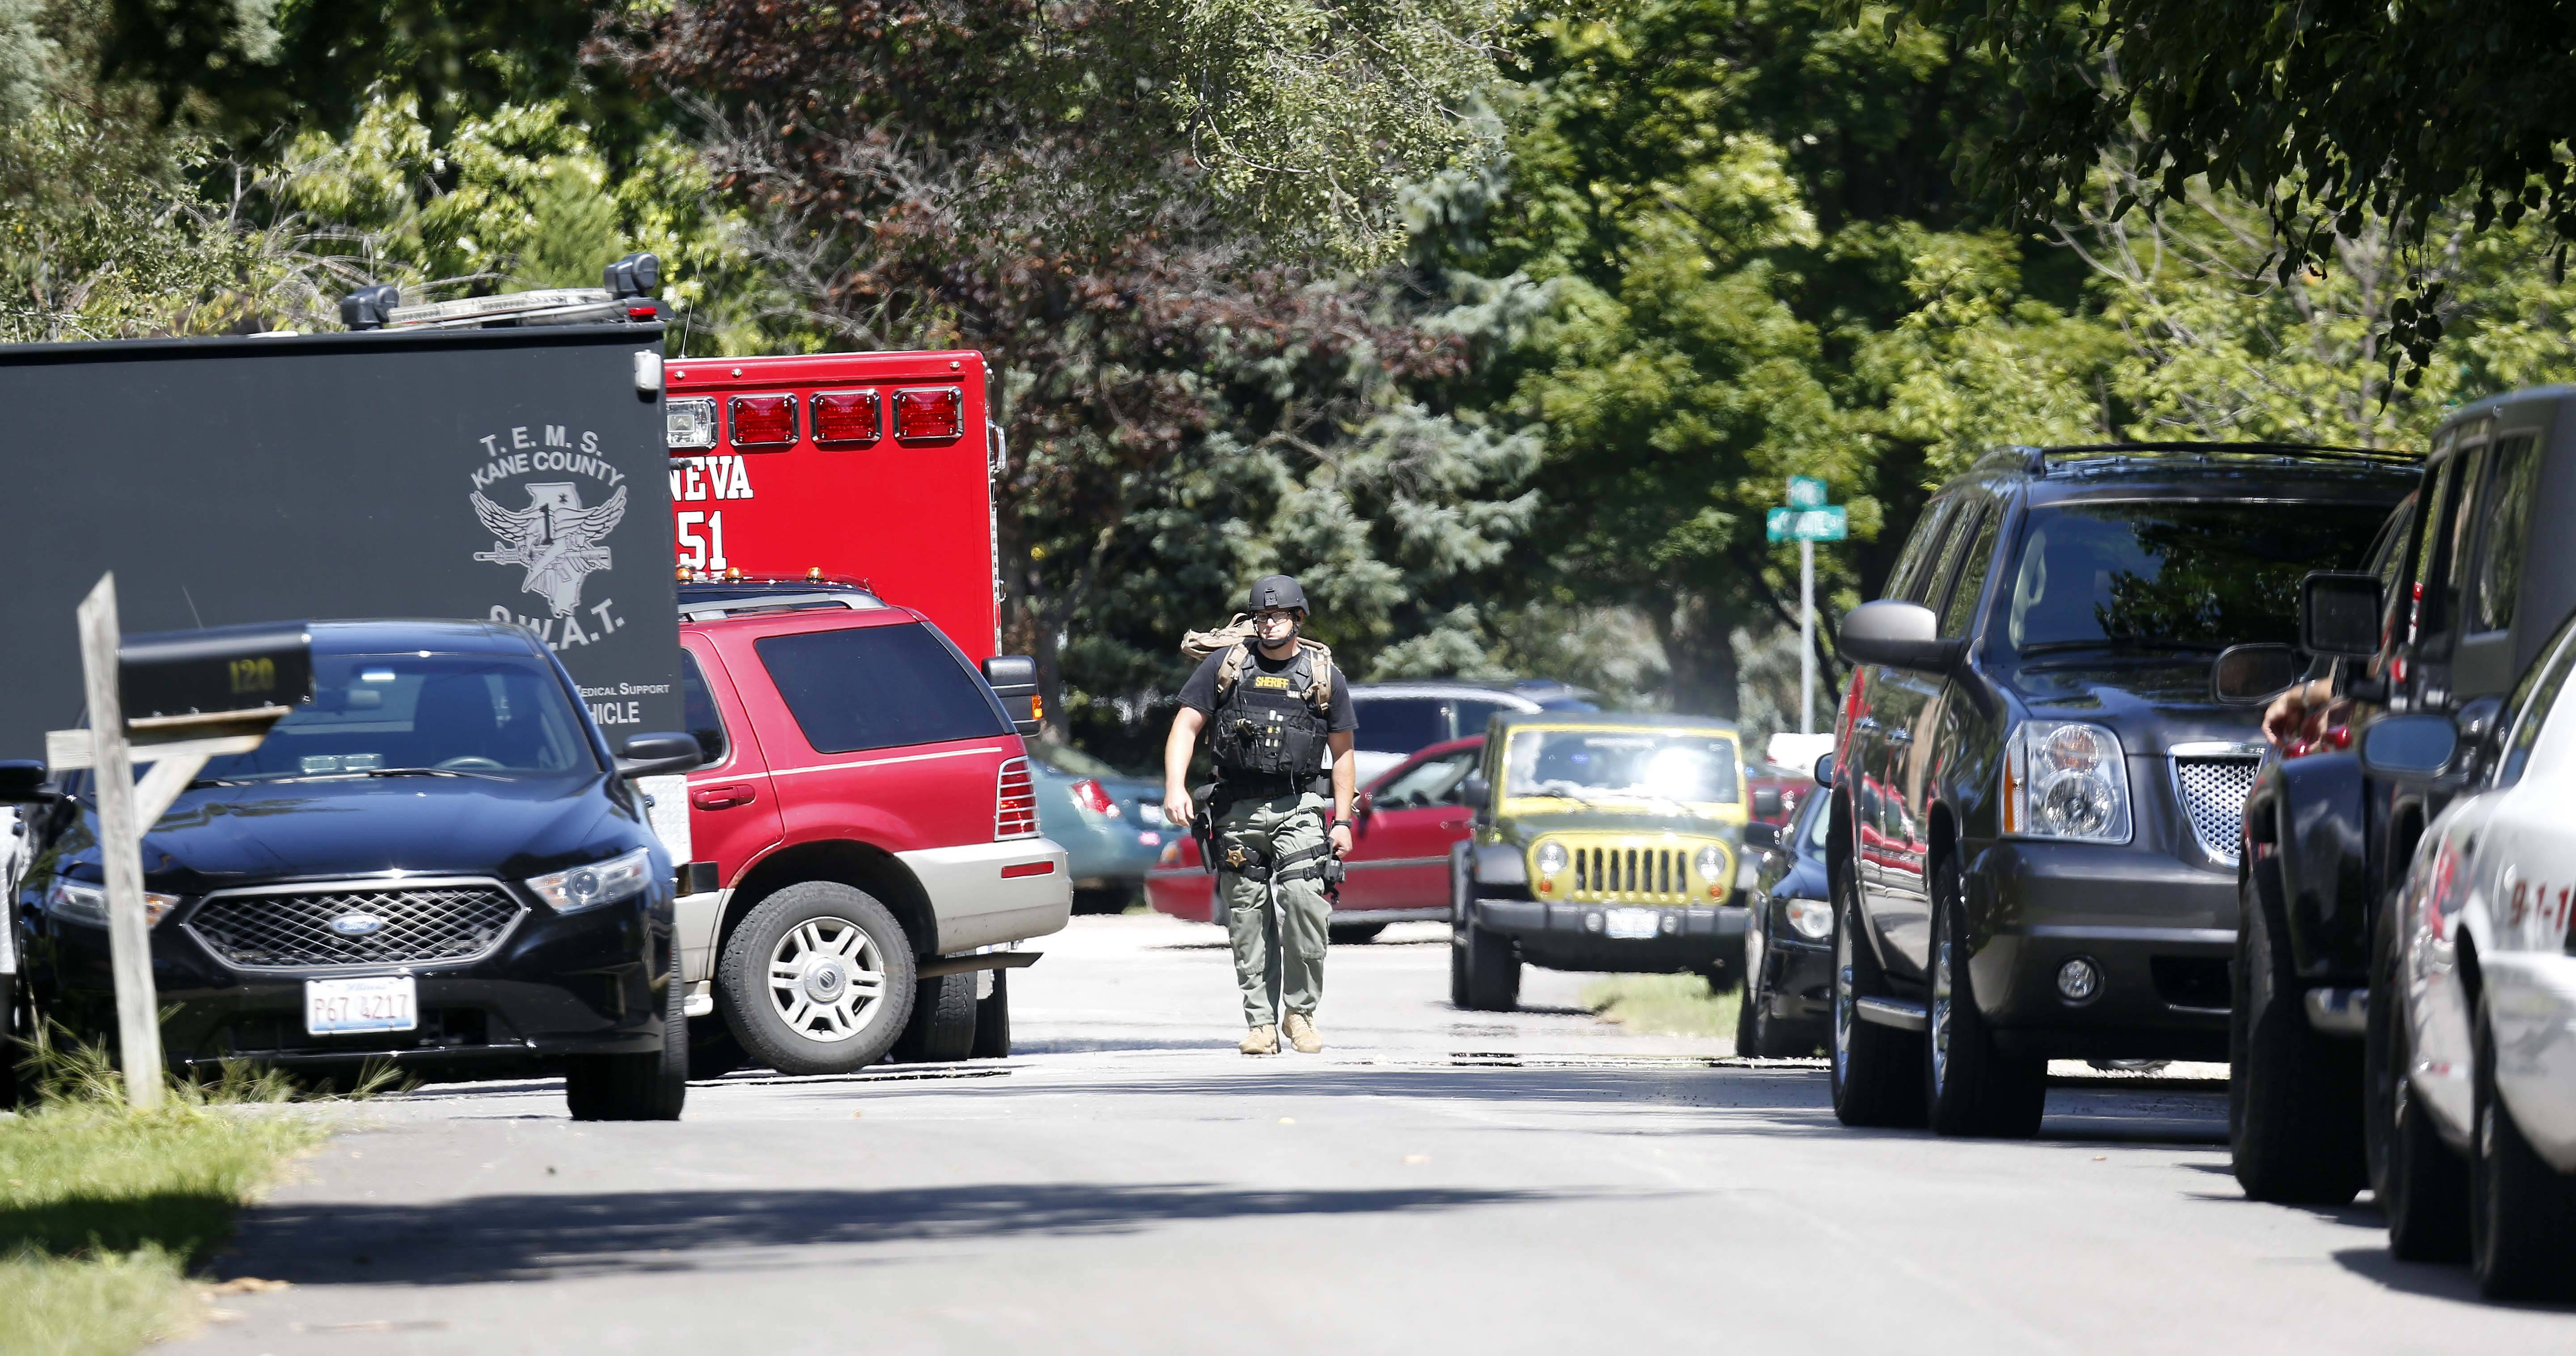 A Geneva man surrendered to police about 1 p.m. Wednesday. Police responded to the 200 block of Syril Drive a couple hours earlier after a woman told police the man appeared intoxicated and had a firearm in the house.